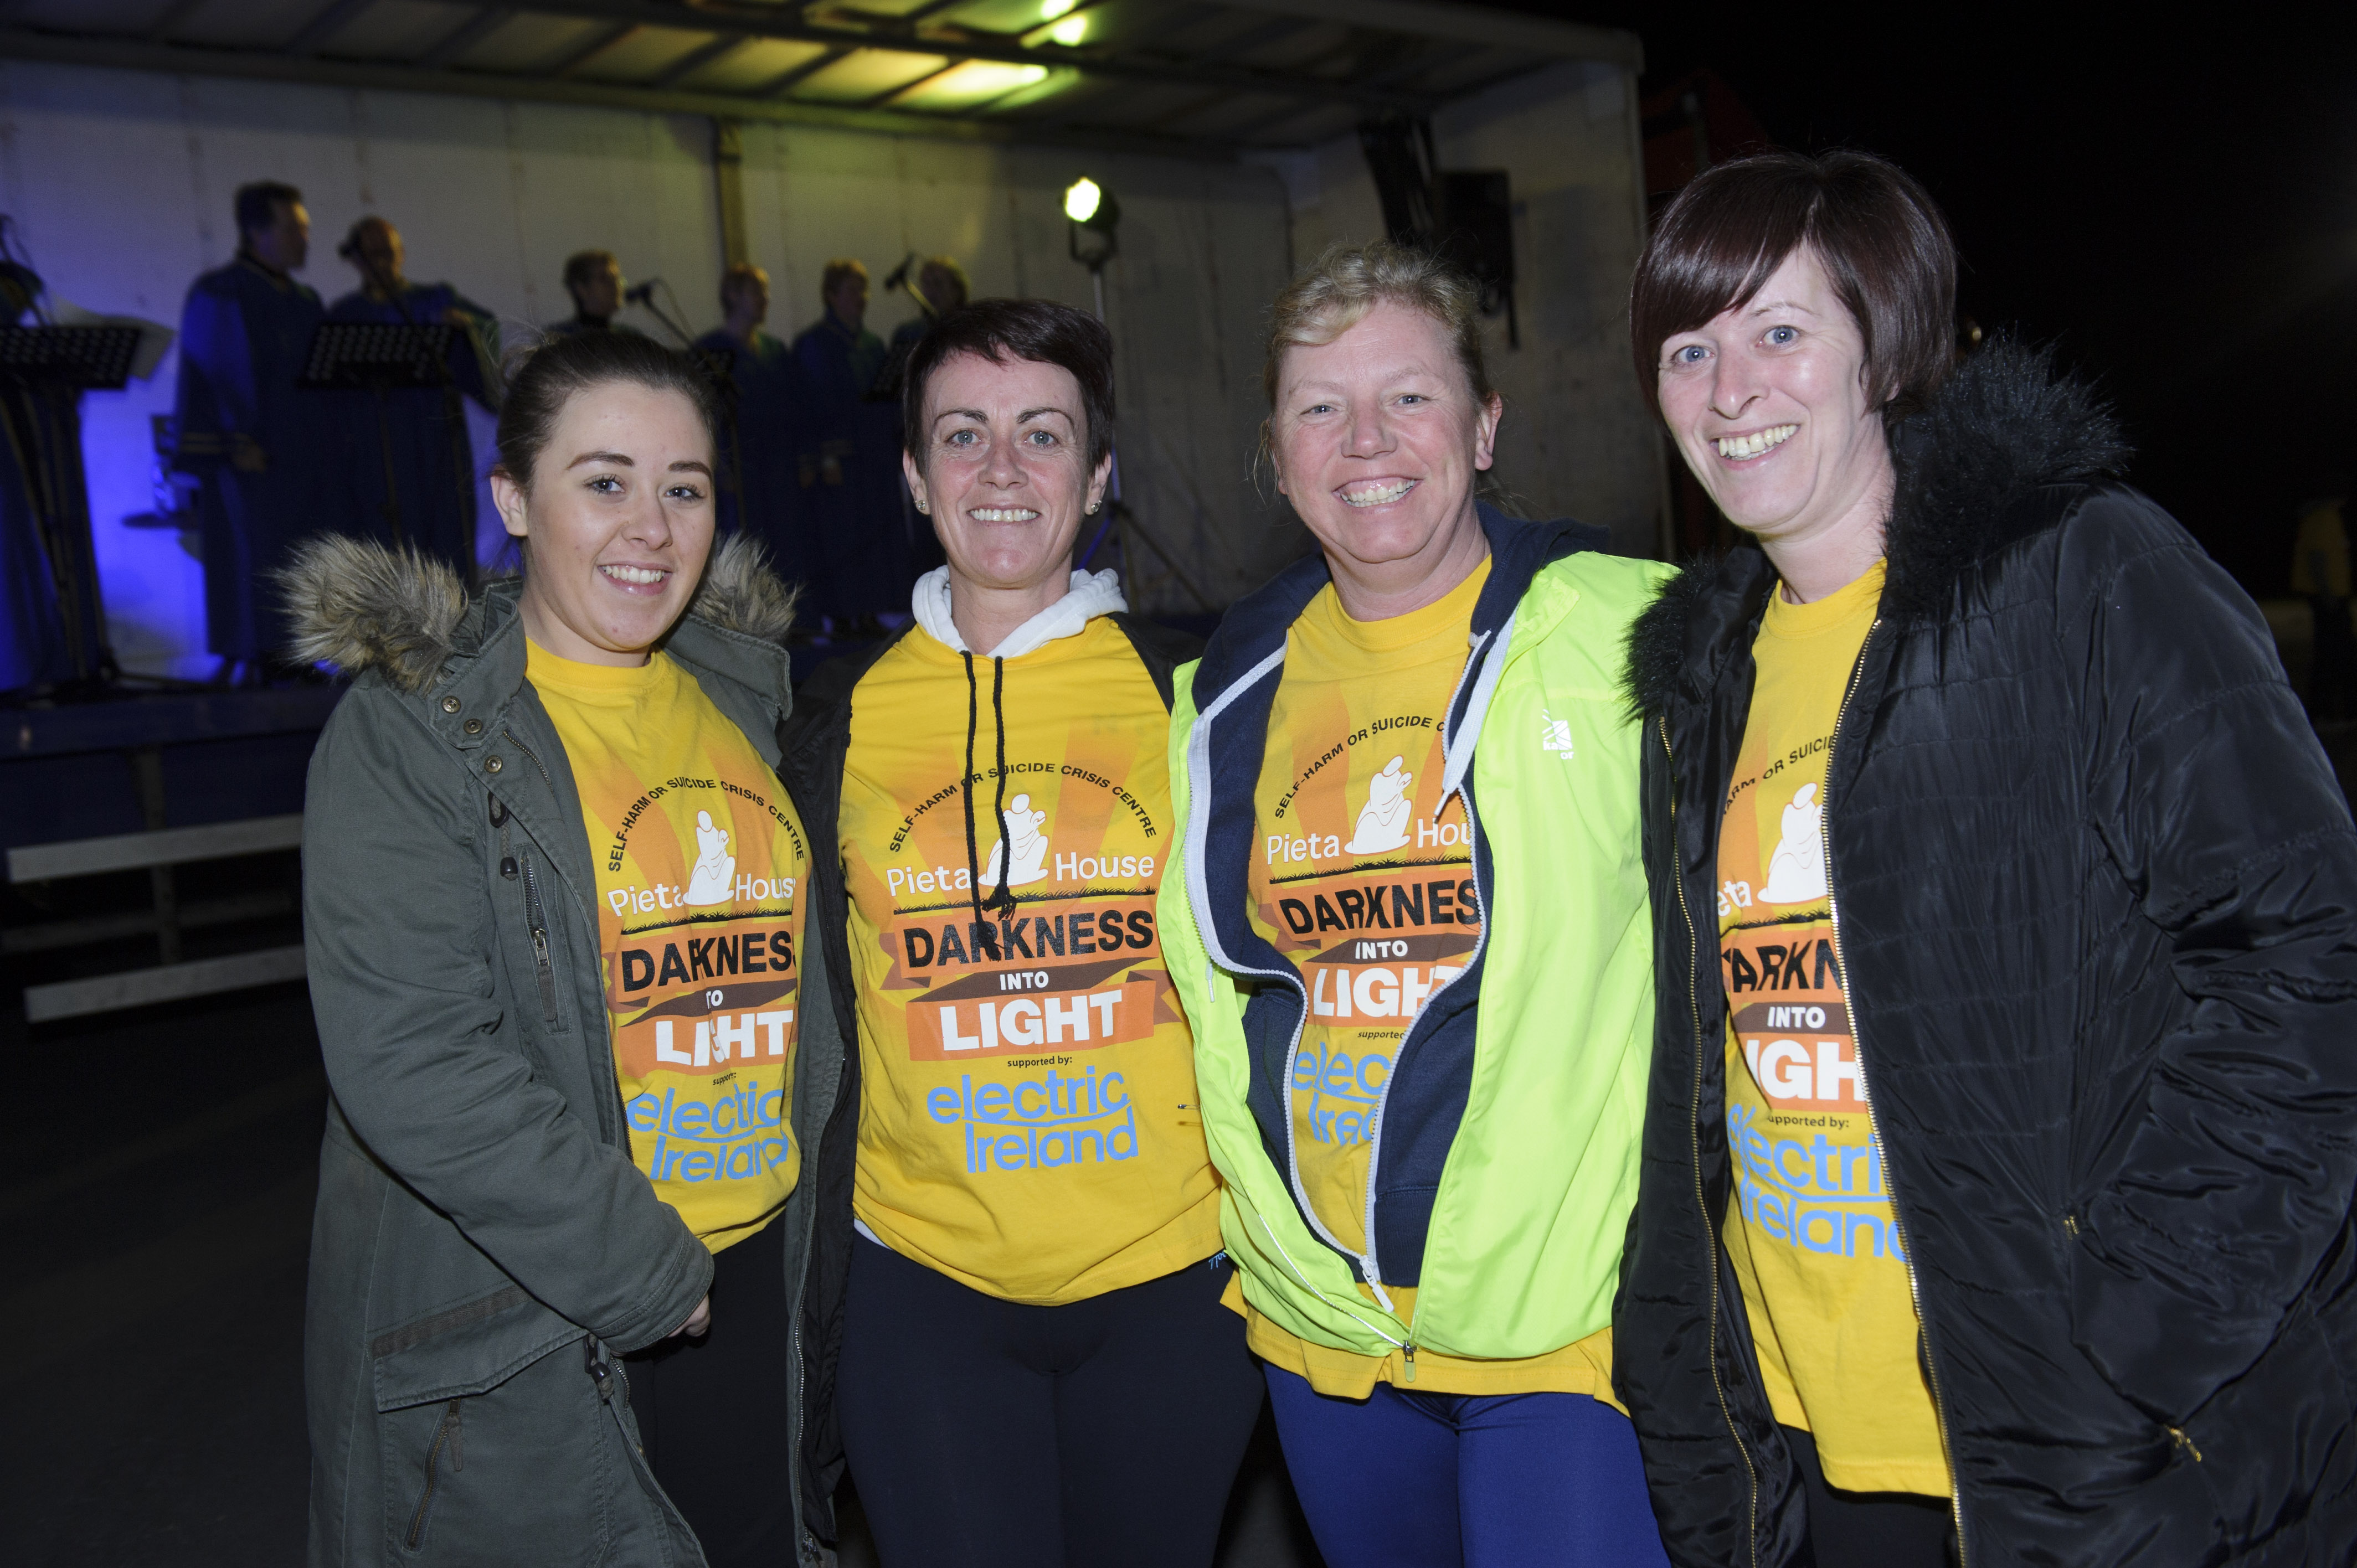 At the Darkness Into Light 5k for Pieta House were (L-R) Kaitlin Reavey, Realene Behan, Tracey Kierans-Sewell and Marie Brady. ©Rory Geary/The Northern Standard